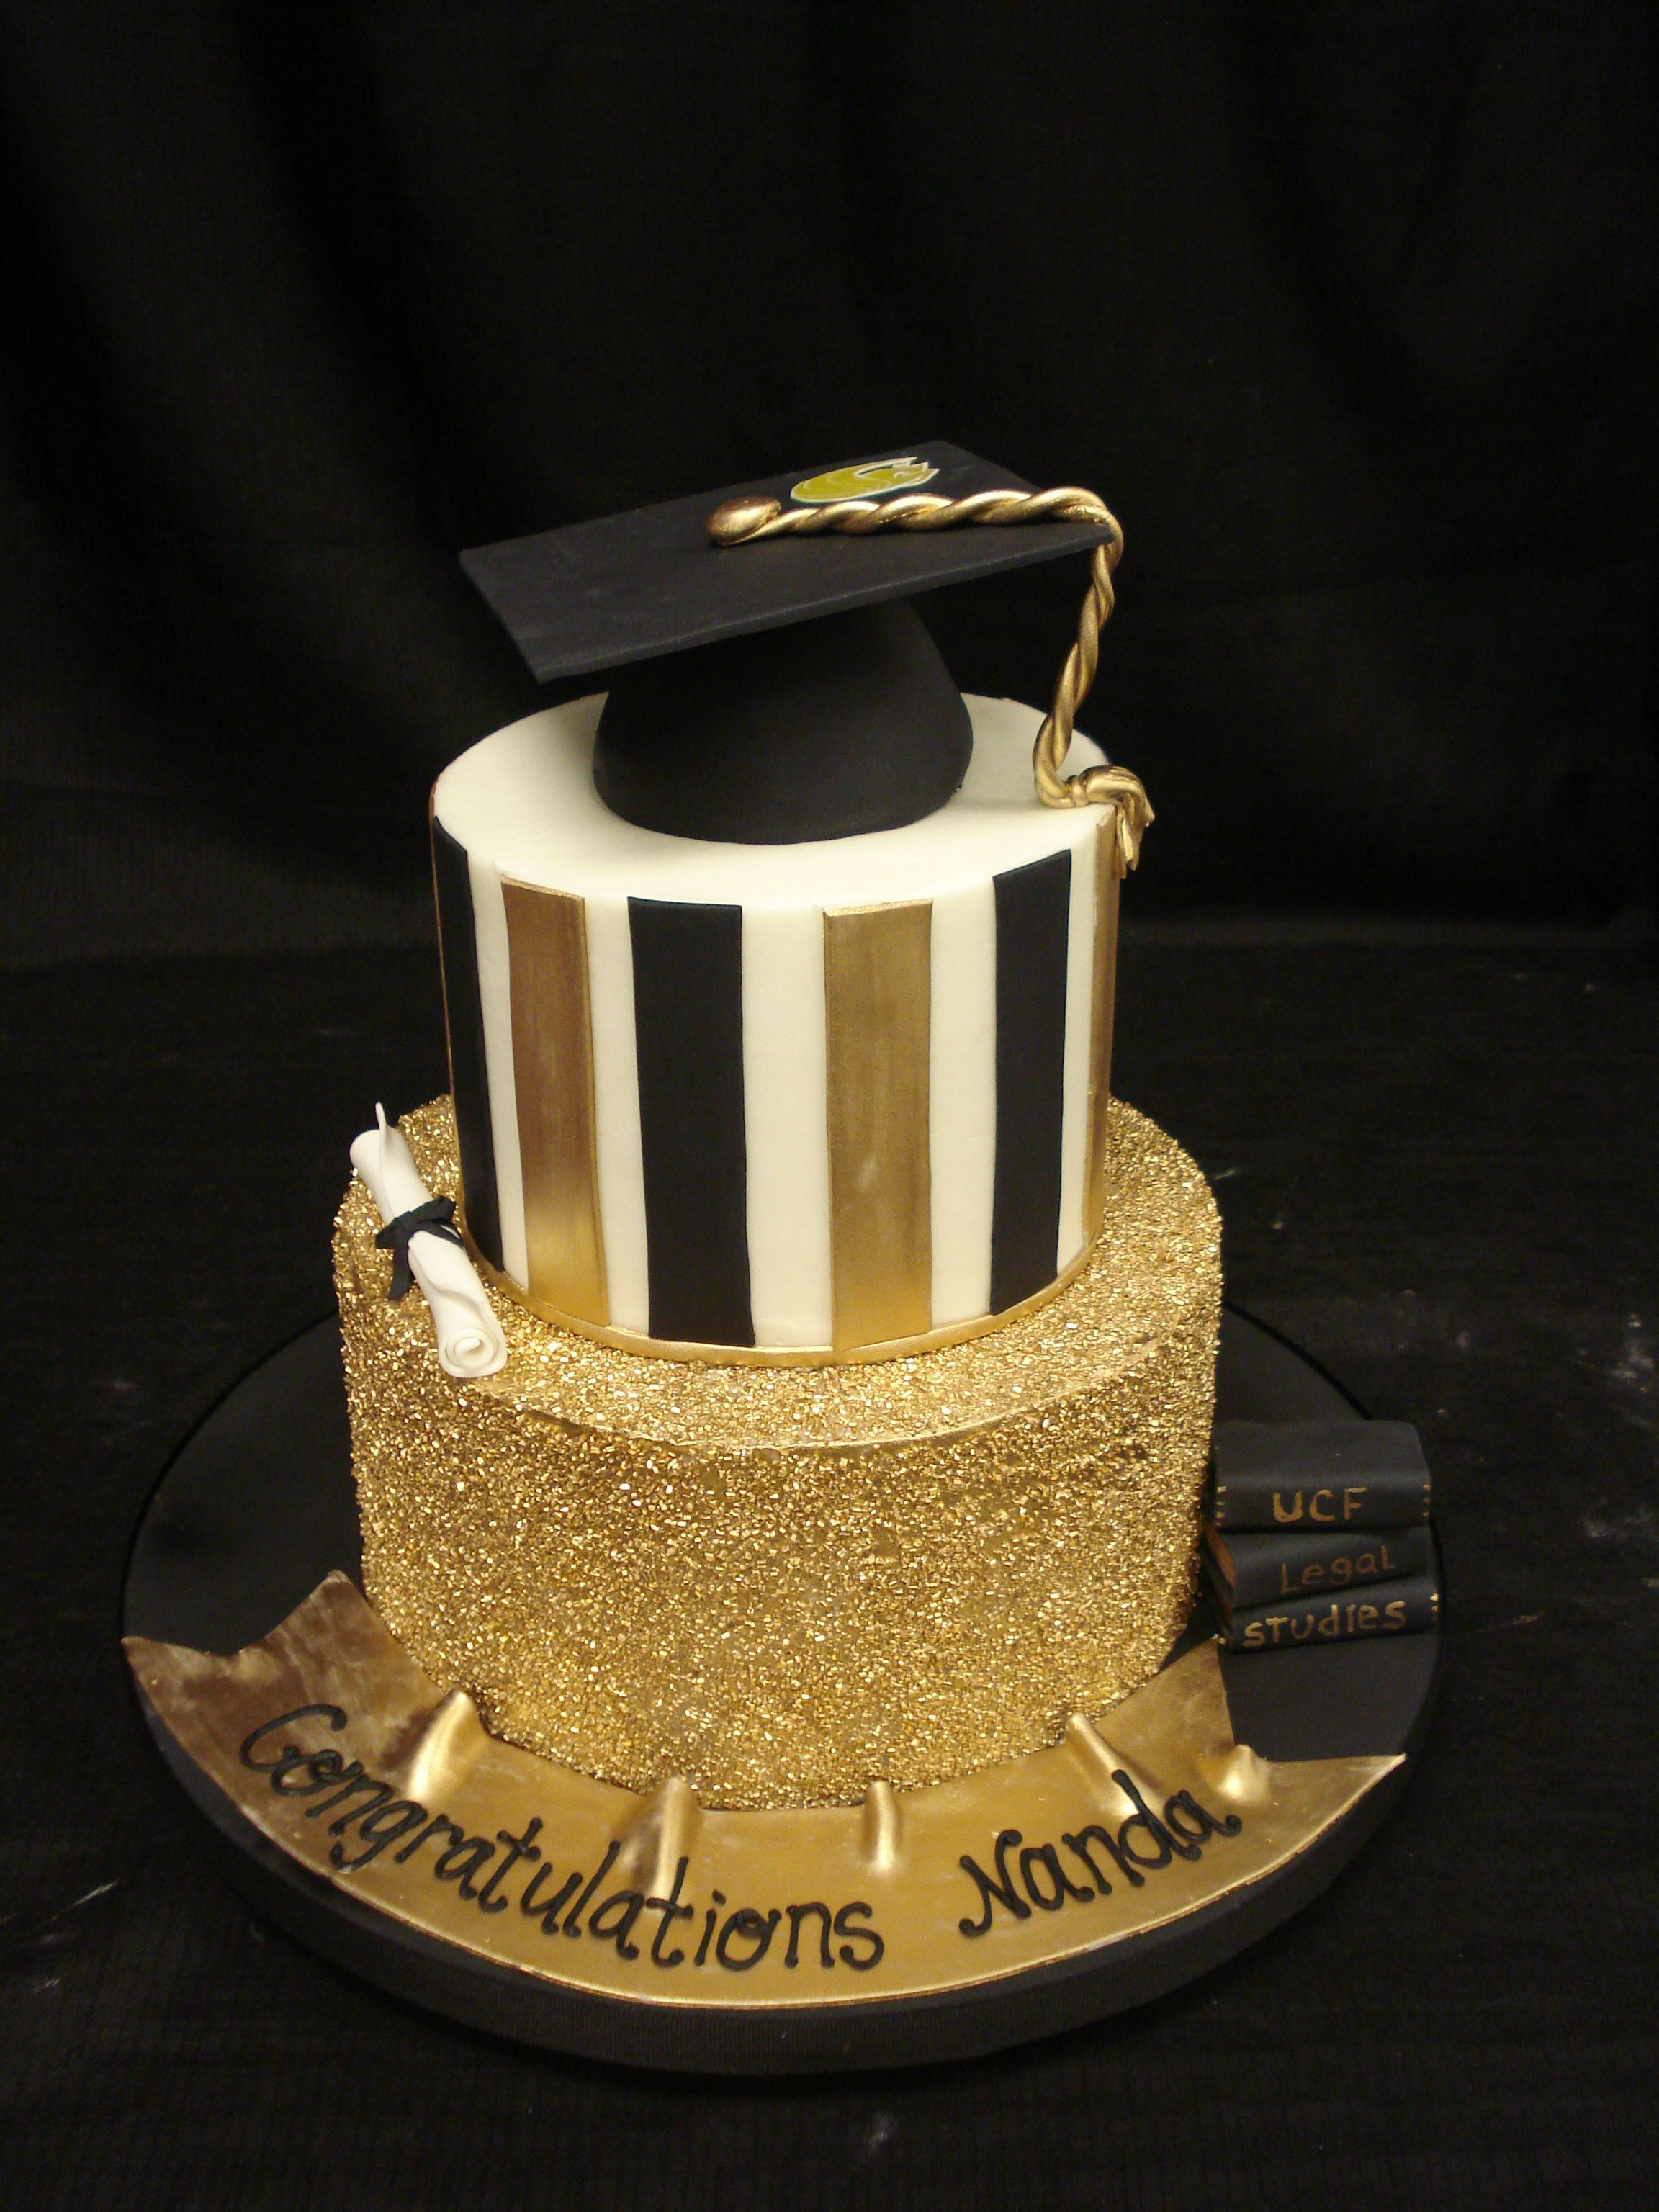 Ucf Graduation Cake With Buttercream Base Fondant Banner Books Diploma And Ca Graduation Party Cake Graduation Cakes Cake